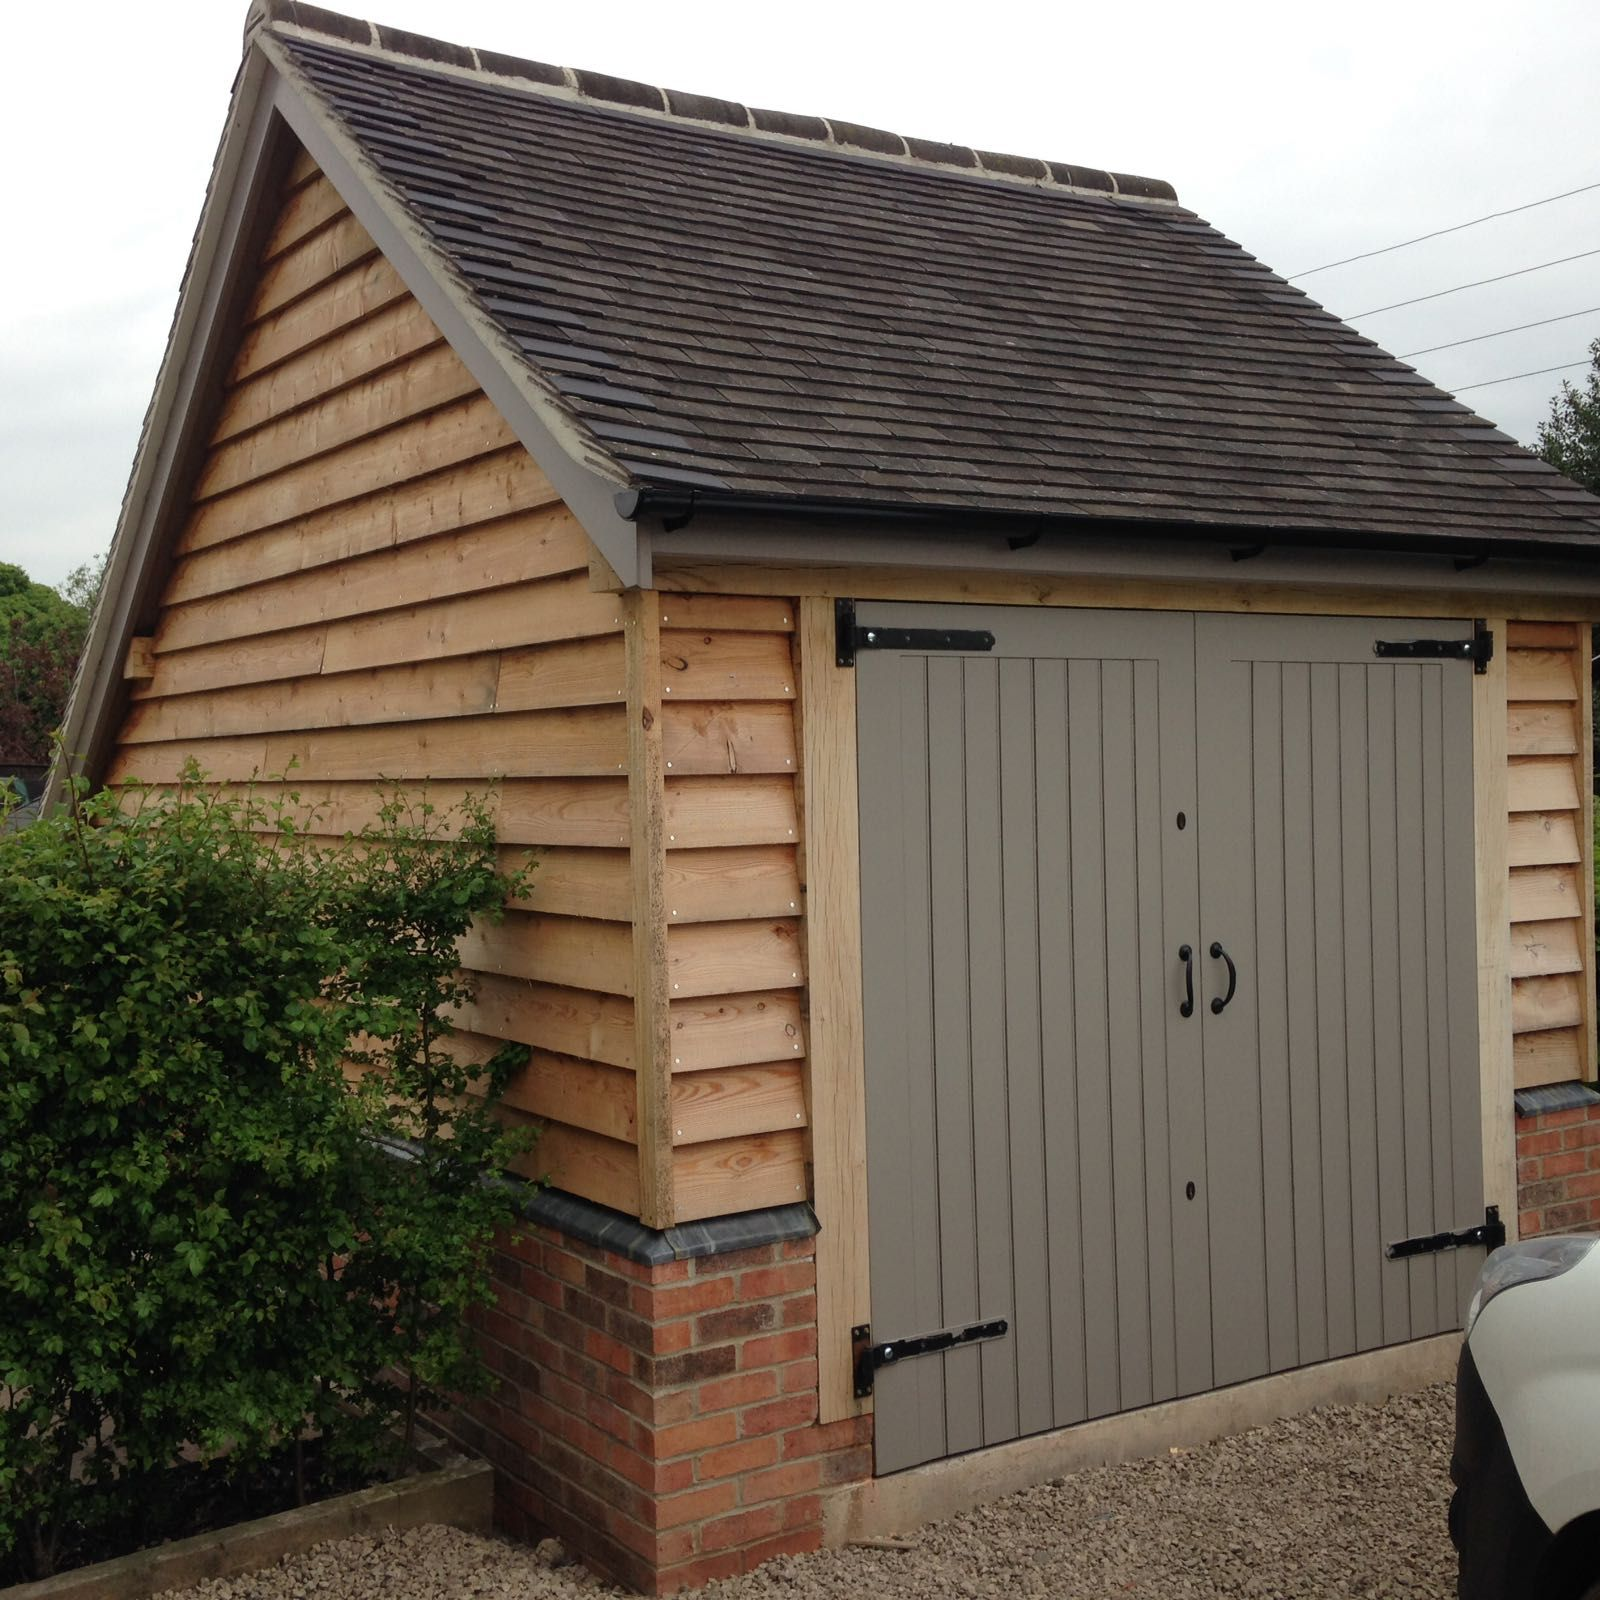 Oak Frame Garage, Larch Cladding And Brick Plinths